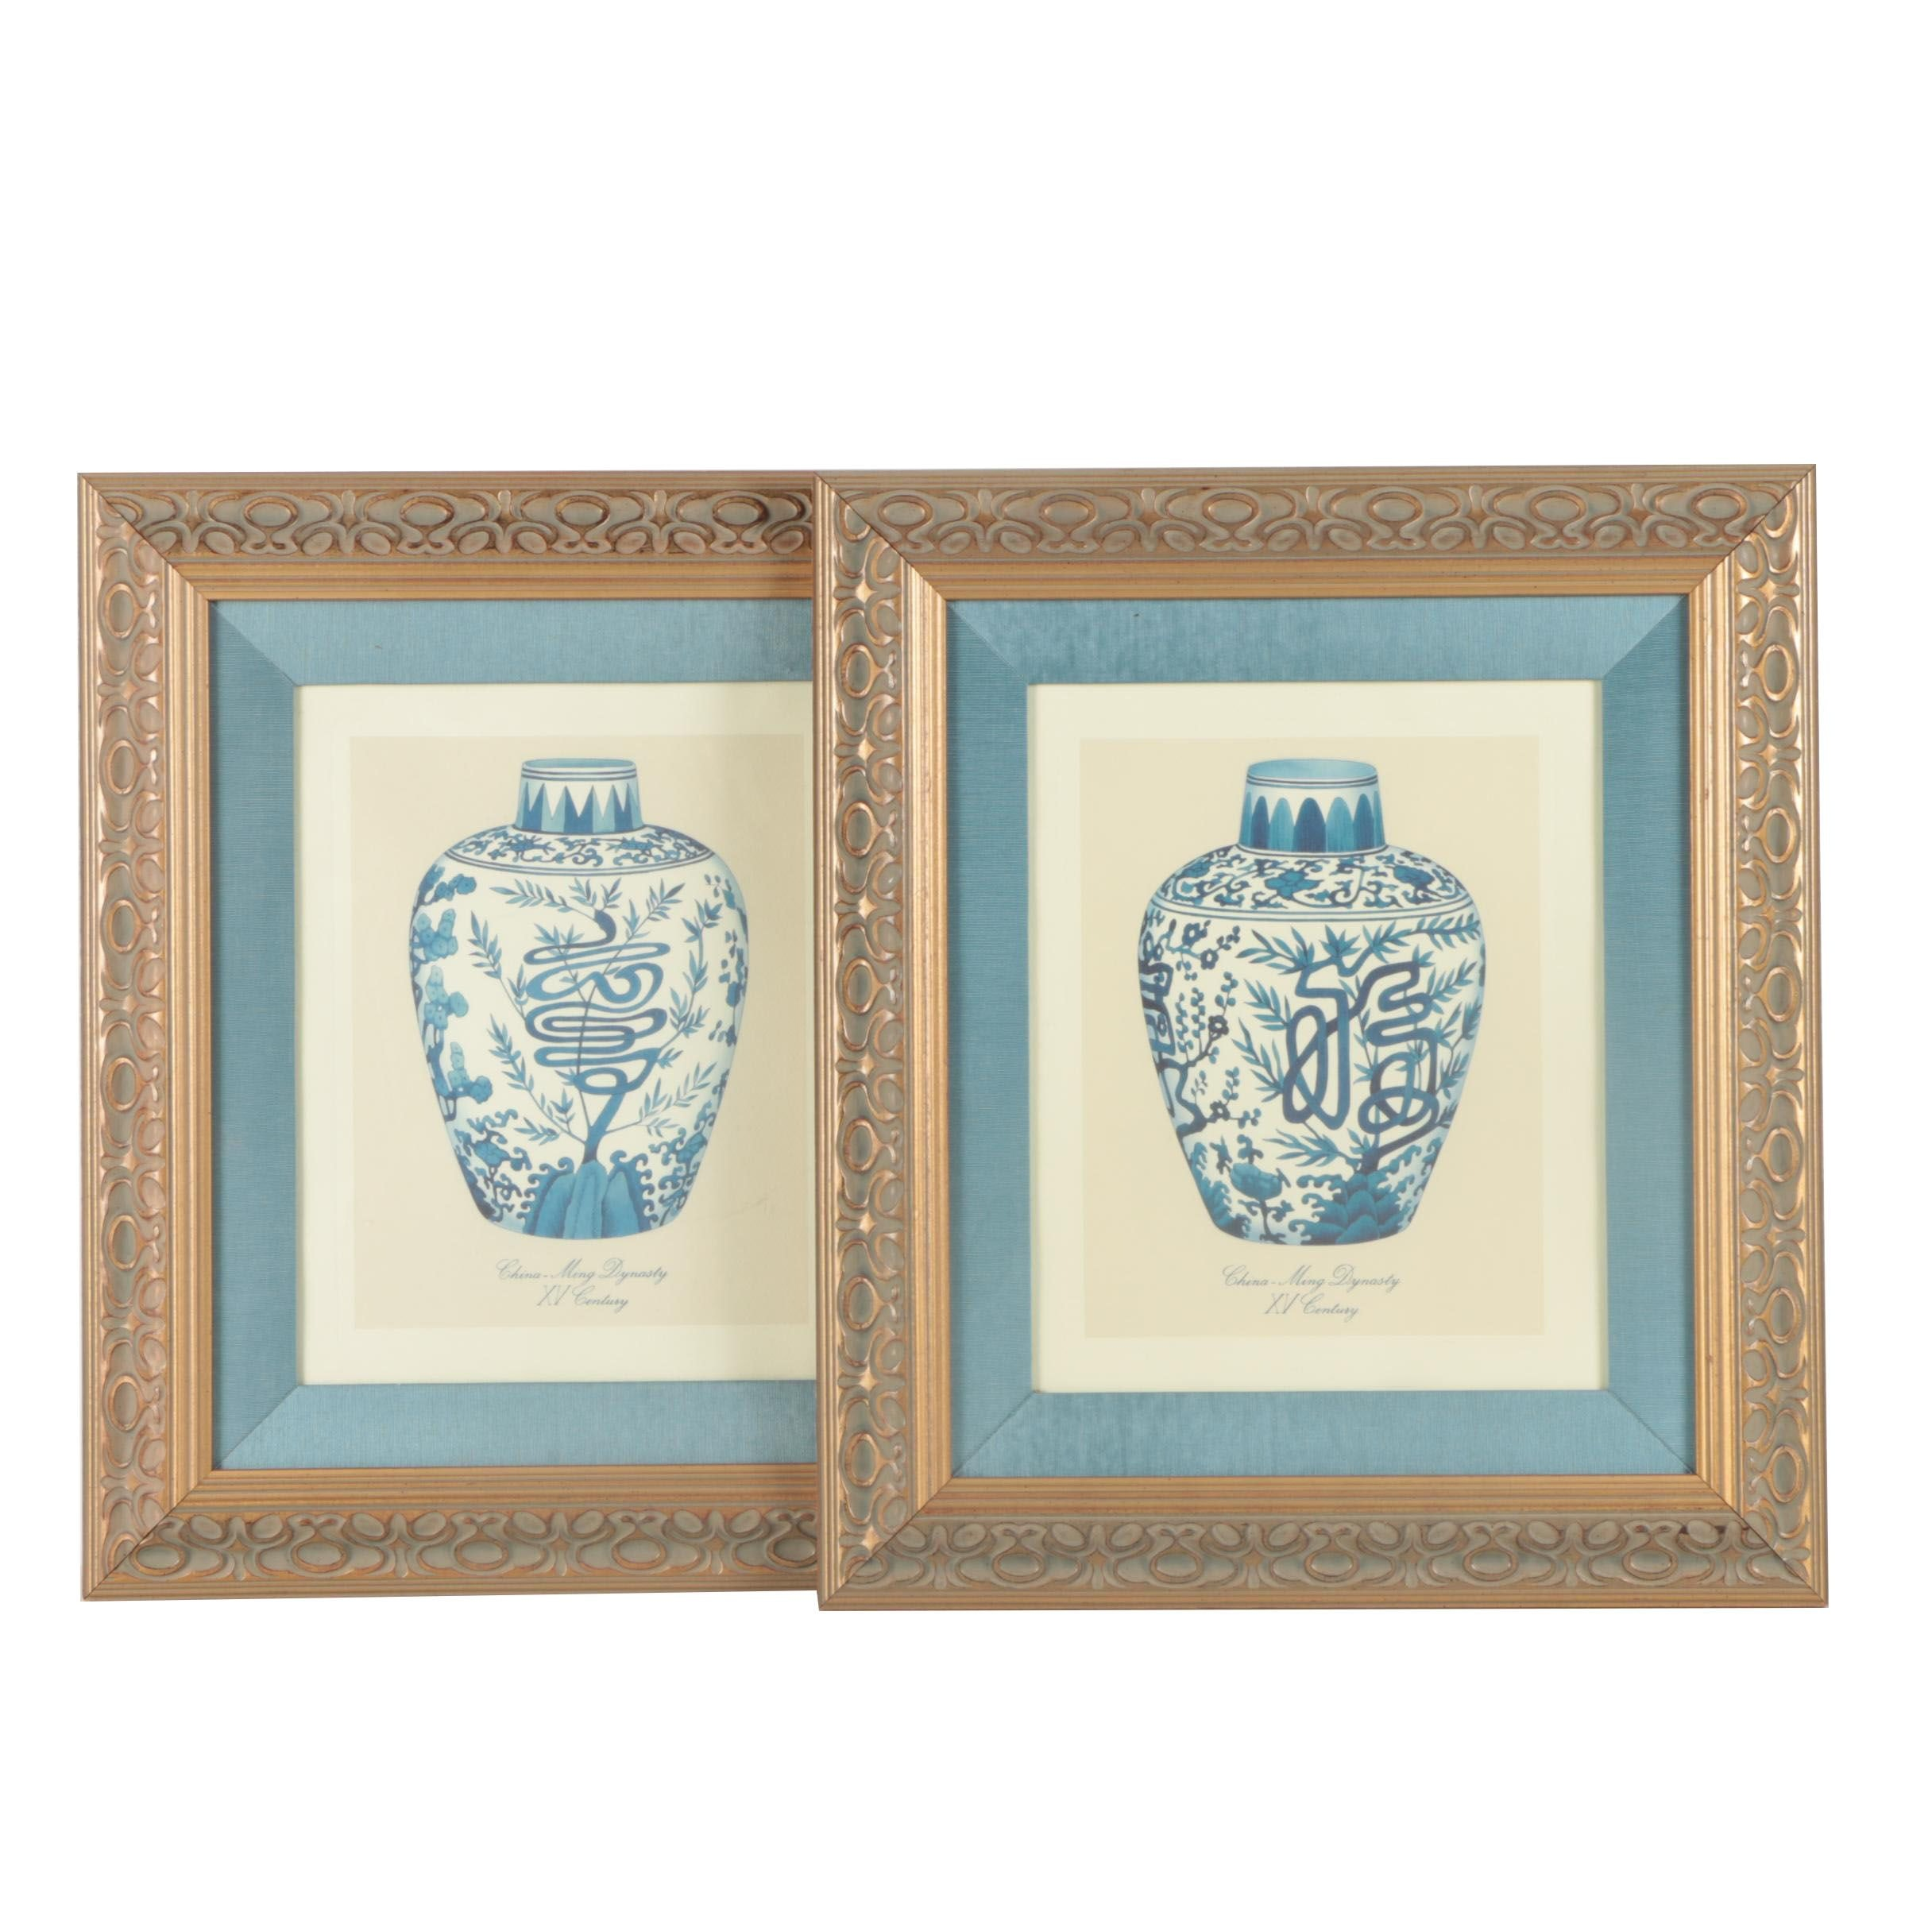 Pair of Offset Lithographs on Paper of Chinese Inspired Vessels